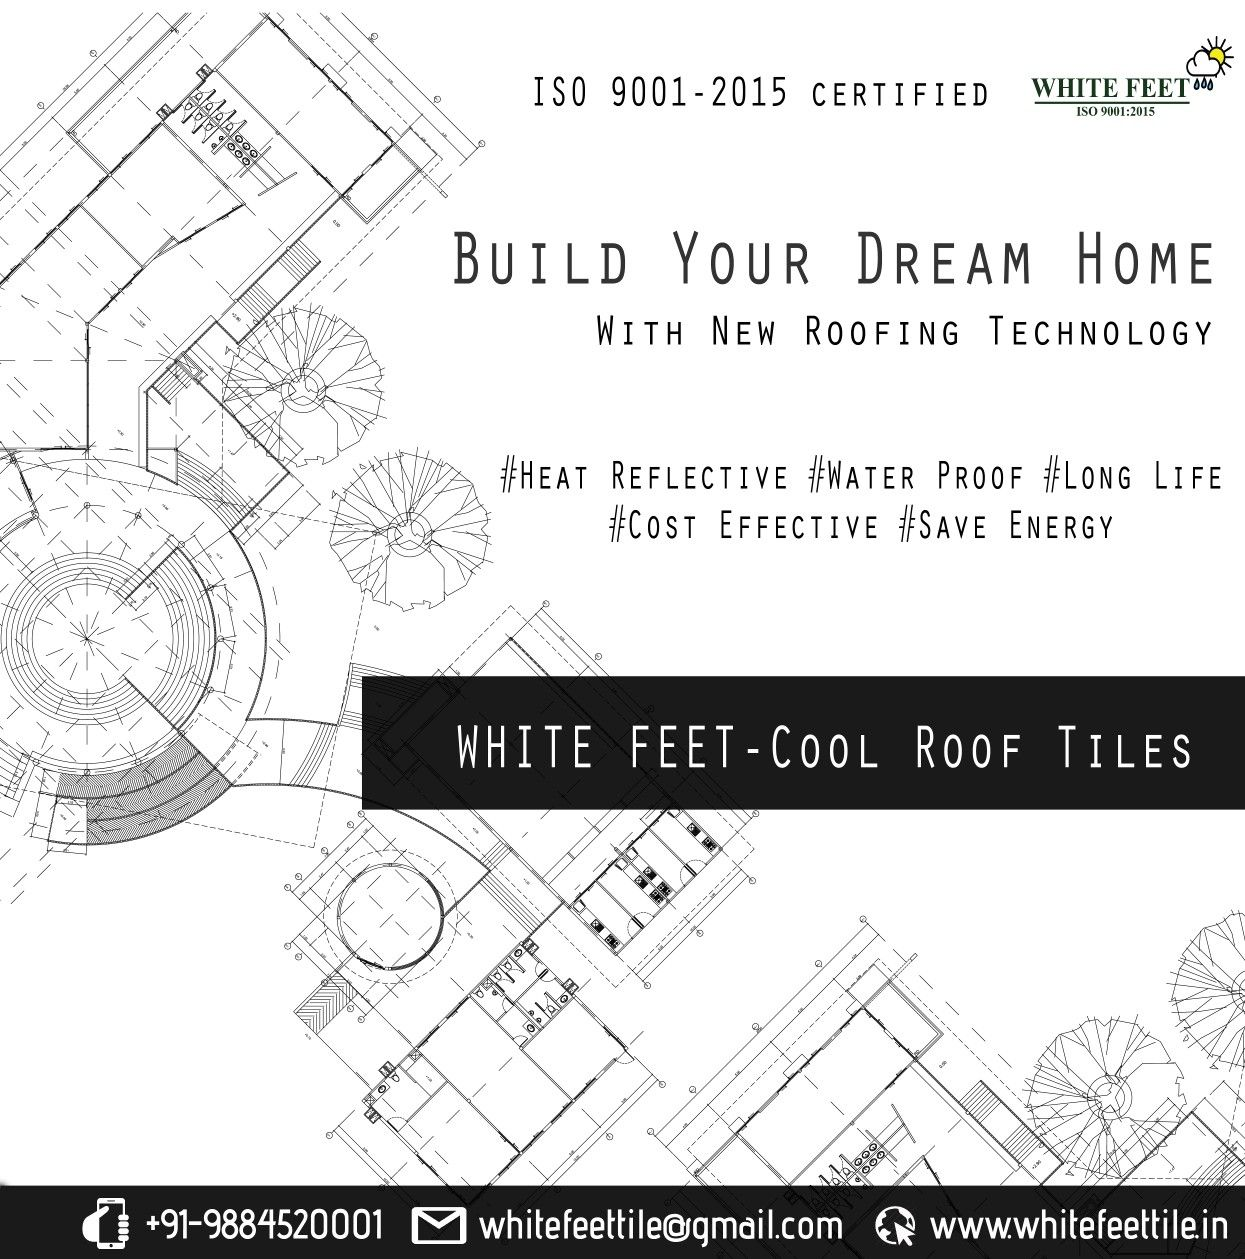 New Roofing Technology White Feet Tile Industry Cool Roof Constructions Building Drawing Buildingplans Roofing Tiles Cool Roof Roof Tiles Roofing